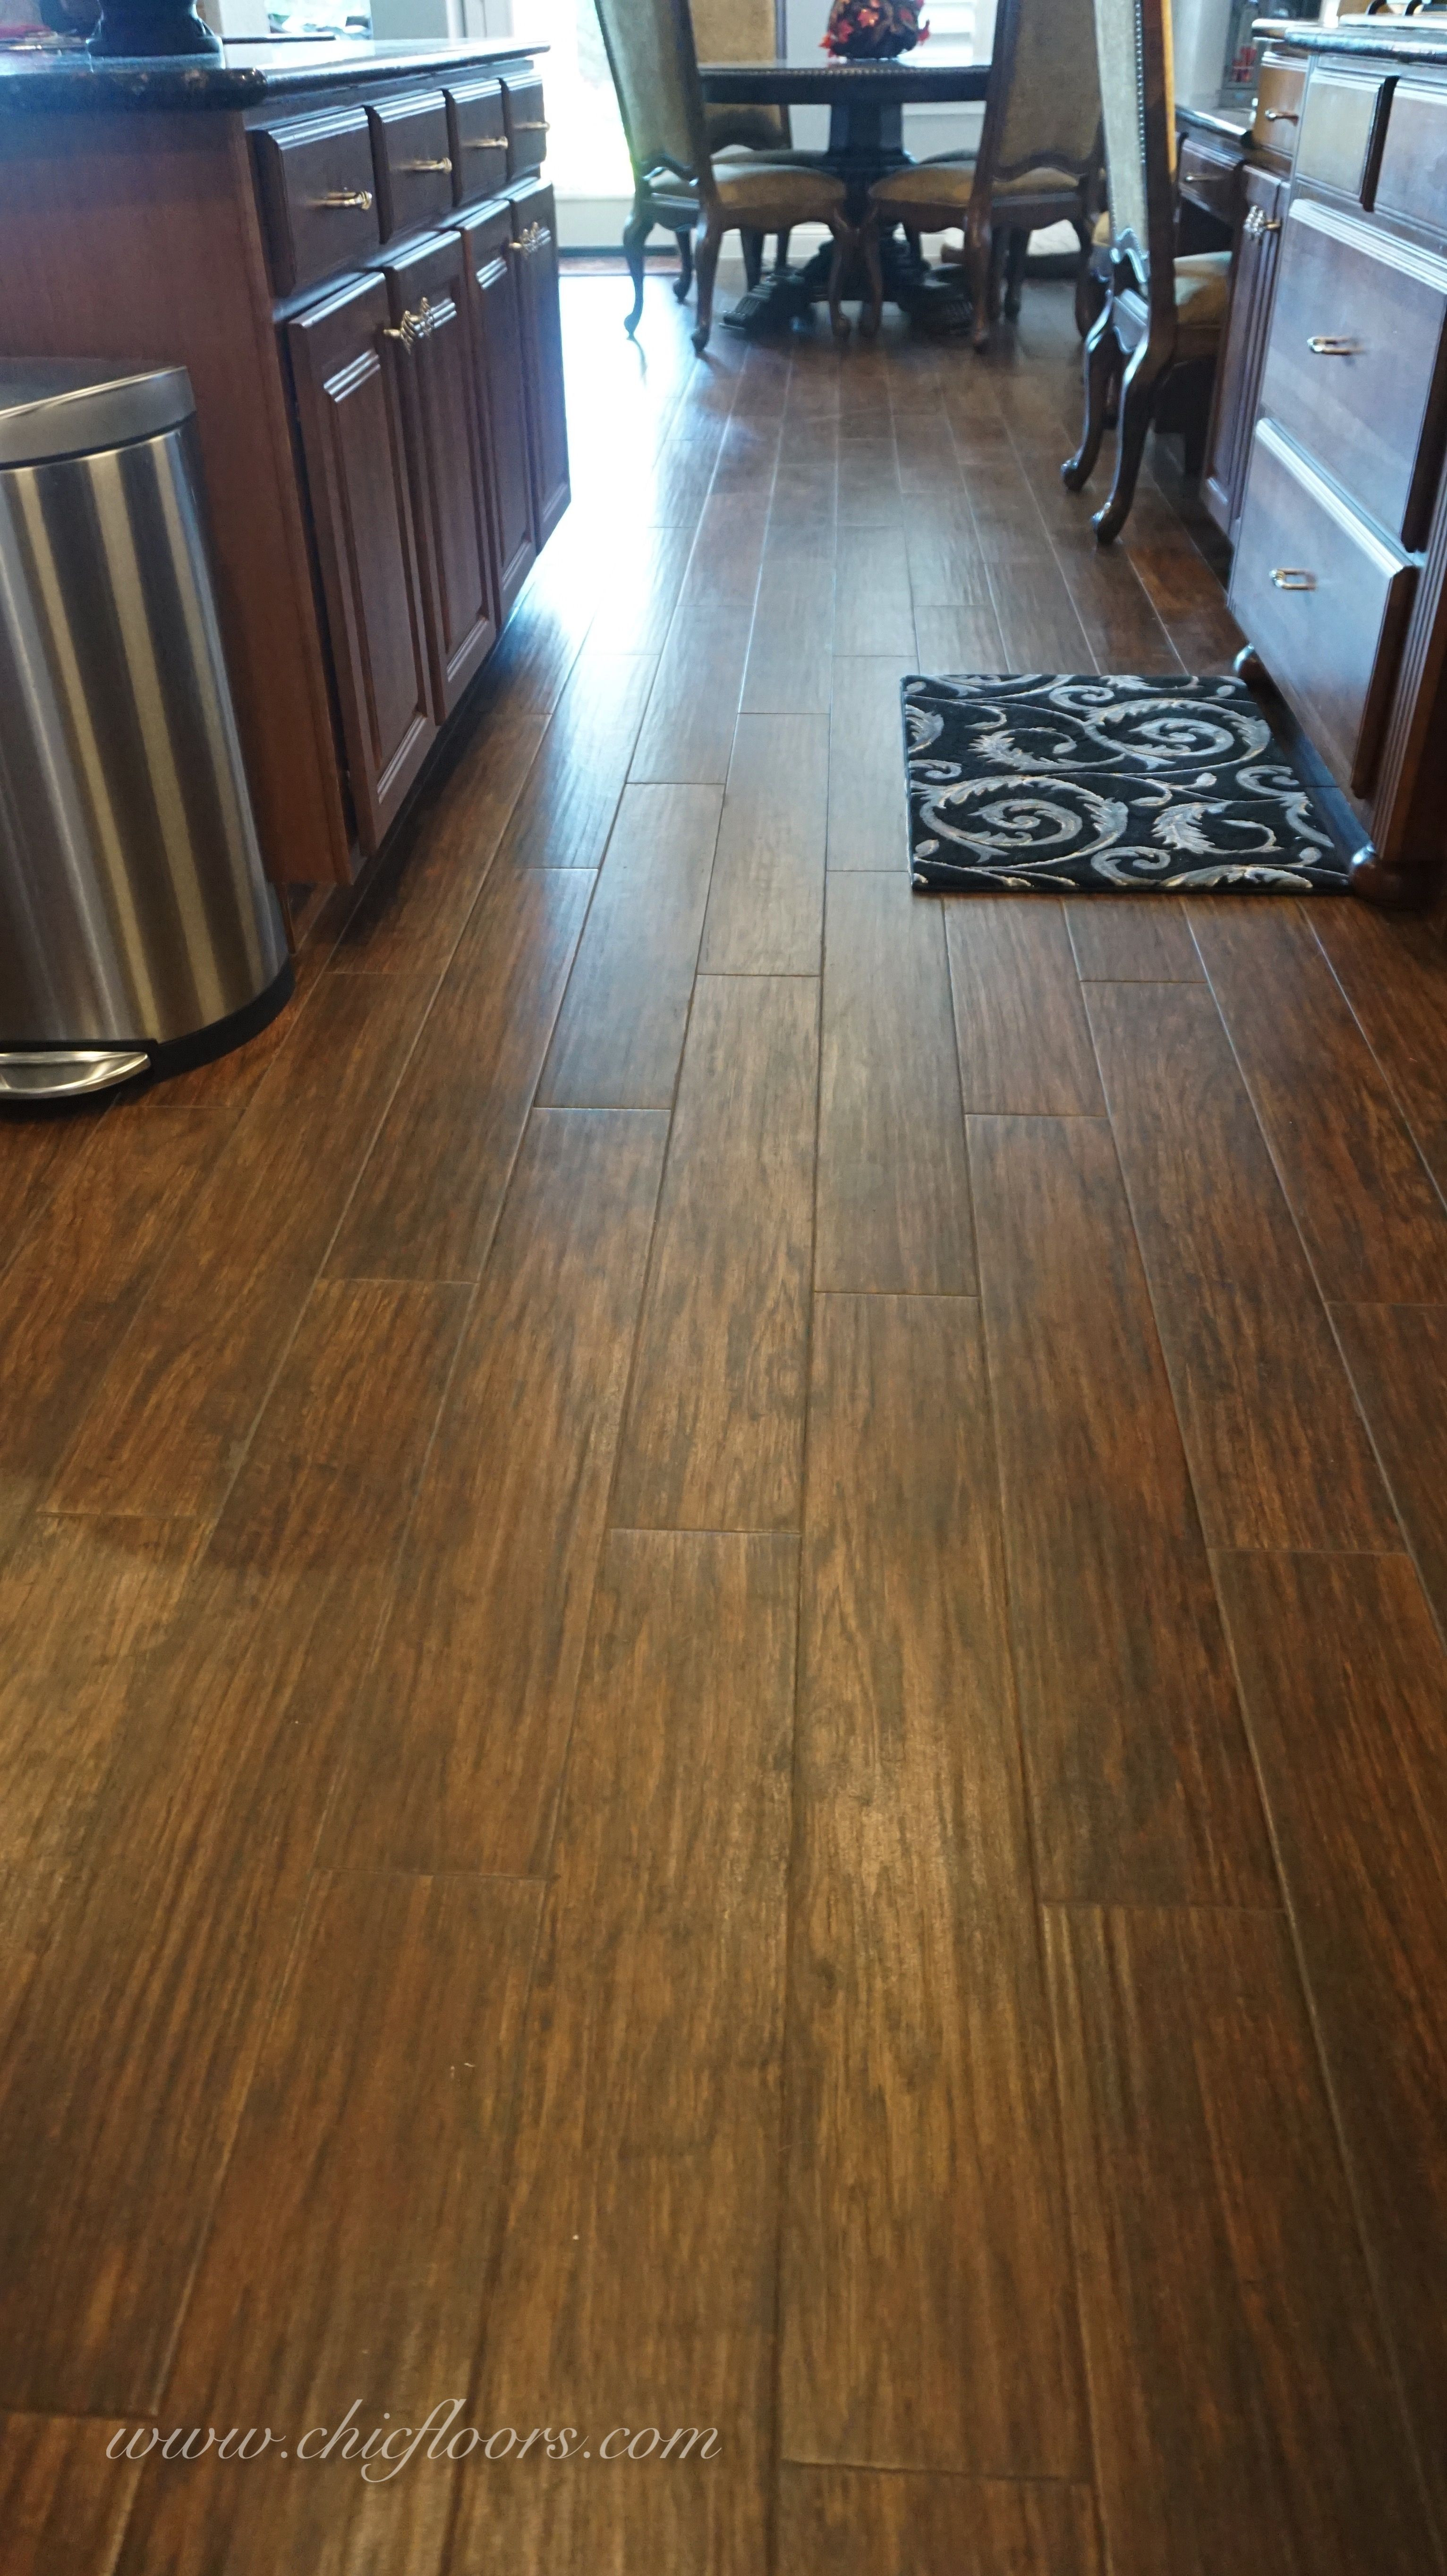 shaw bamboo hardwood flooring of shaw floors petrified hickory 6x36 porcelain tile in the color 700 with shaw floors petrified hickory 6x36 porcelain tile in the color 700 fossil